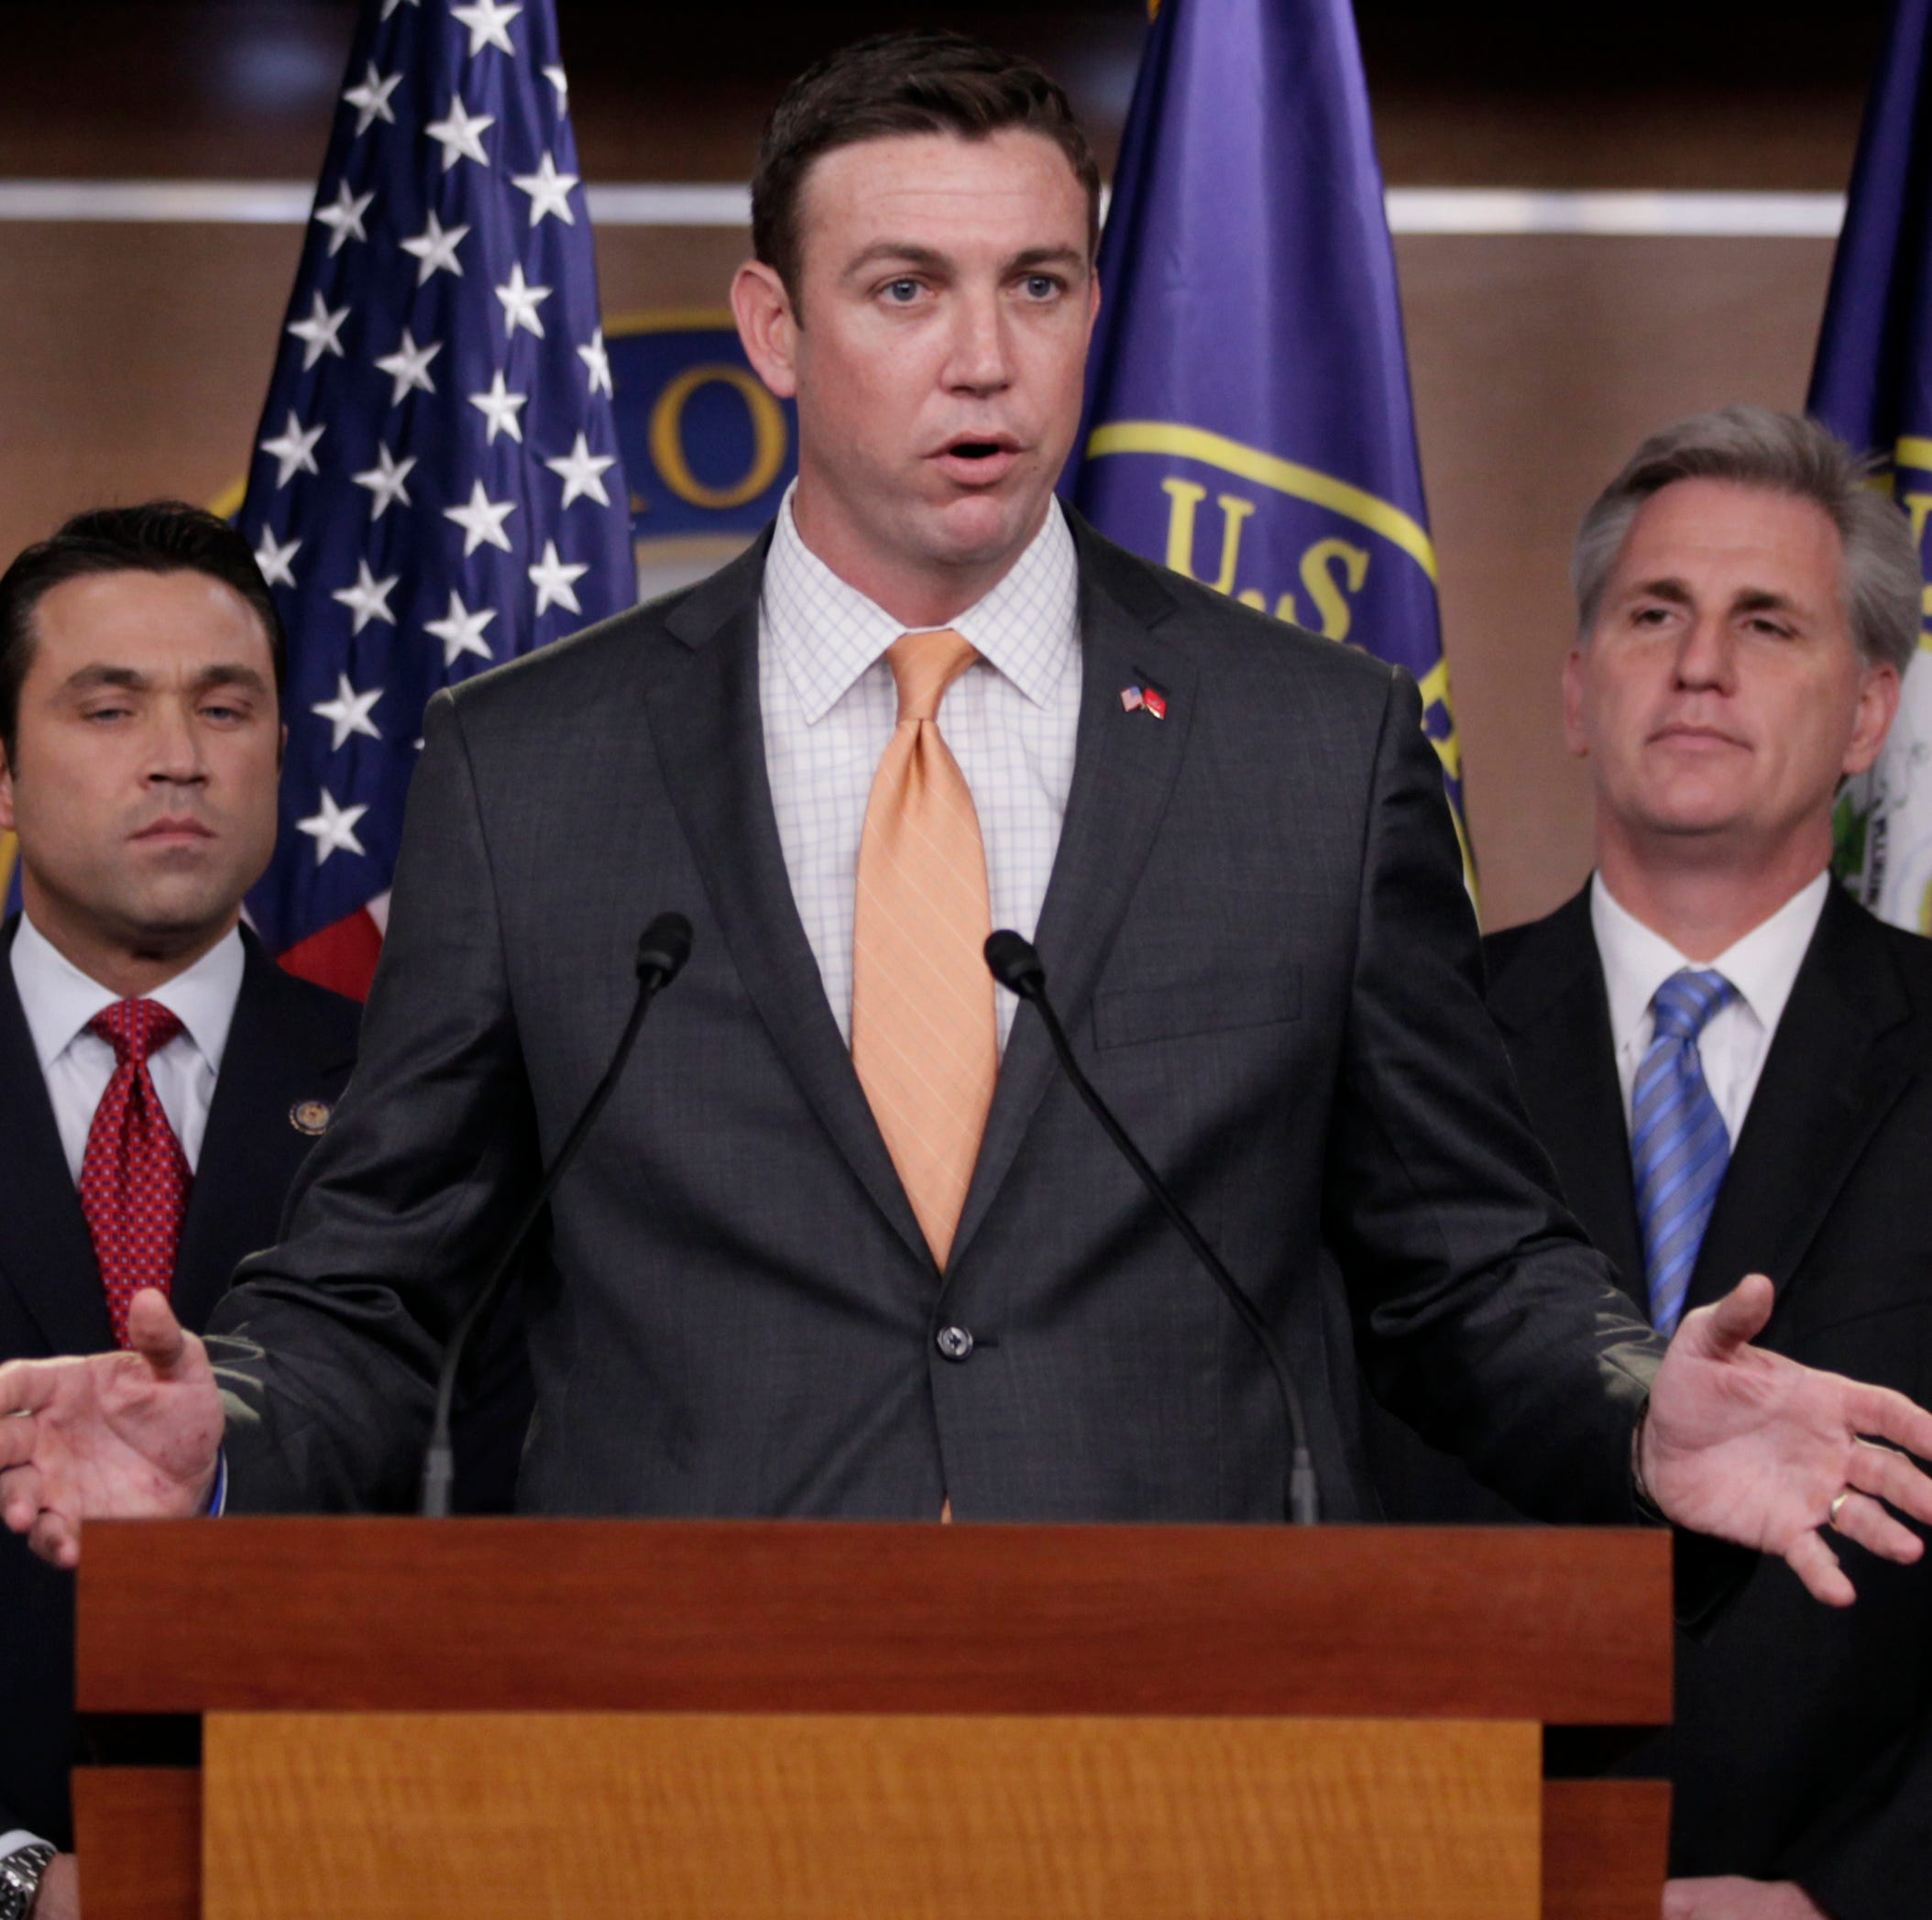 FILE - In this April 7, 2011 file photo, U.S. Rep. Duncan Hunter, R-Calif., center, speaks during a news conference on Capitol Hill.